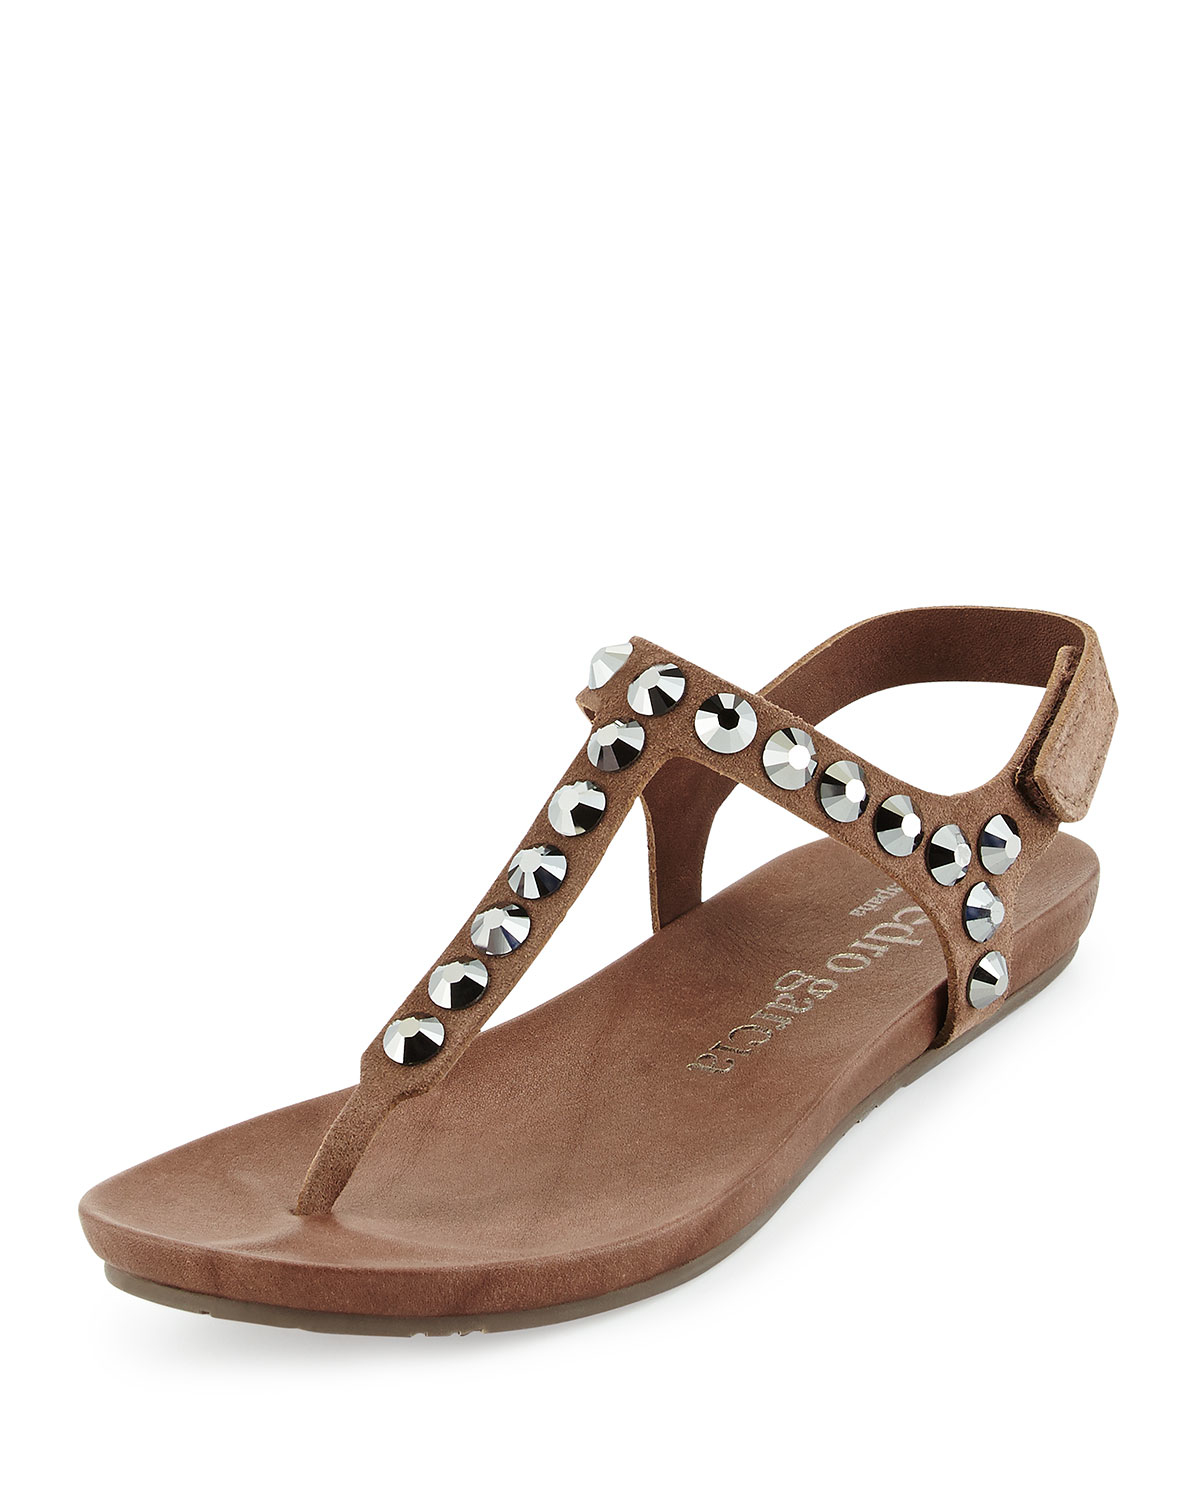 4a8a9146af7924 Pedro Garcia Judith Studded-Suede Sandals in Brown - Lyst